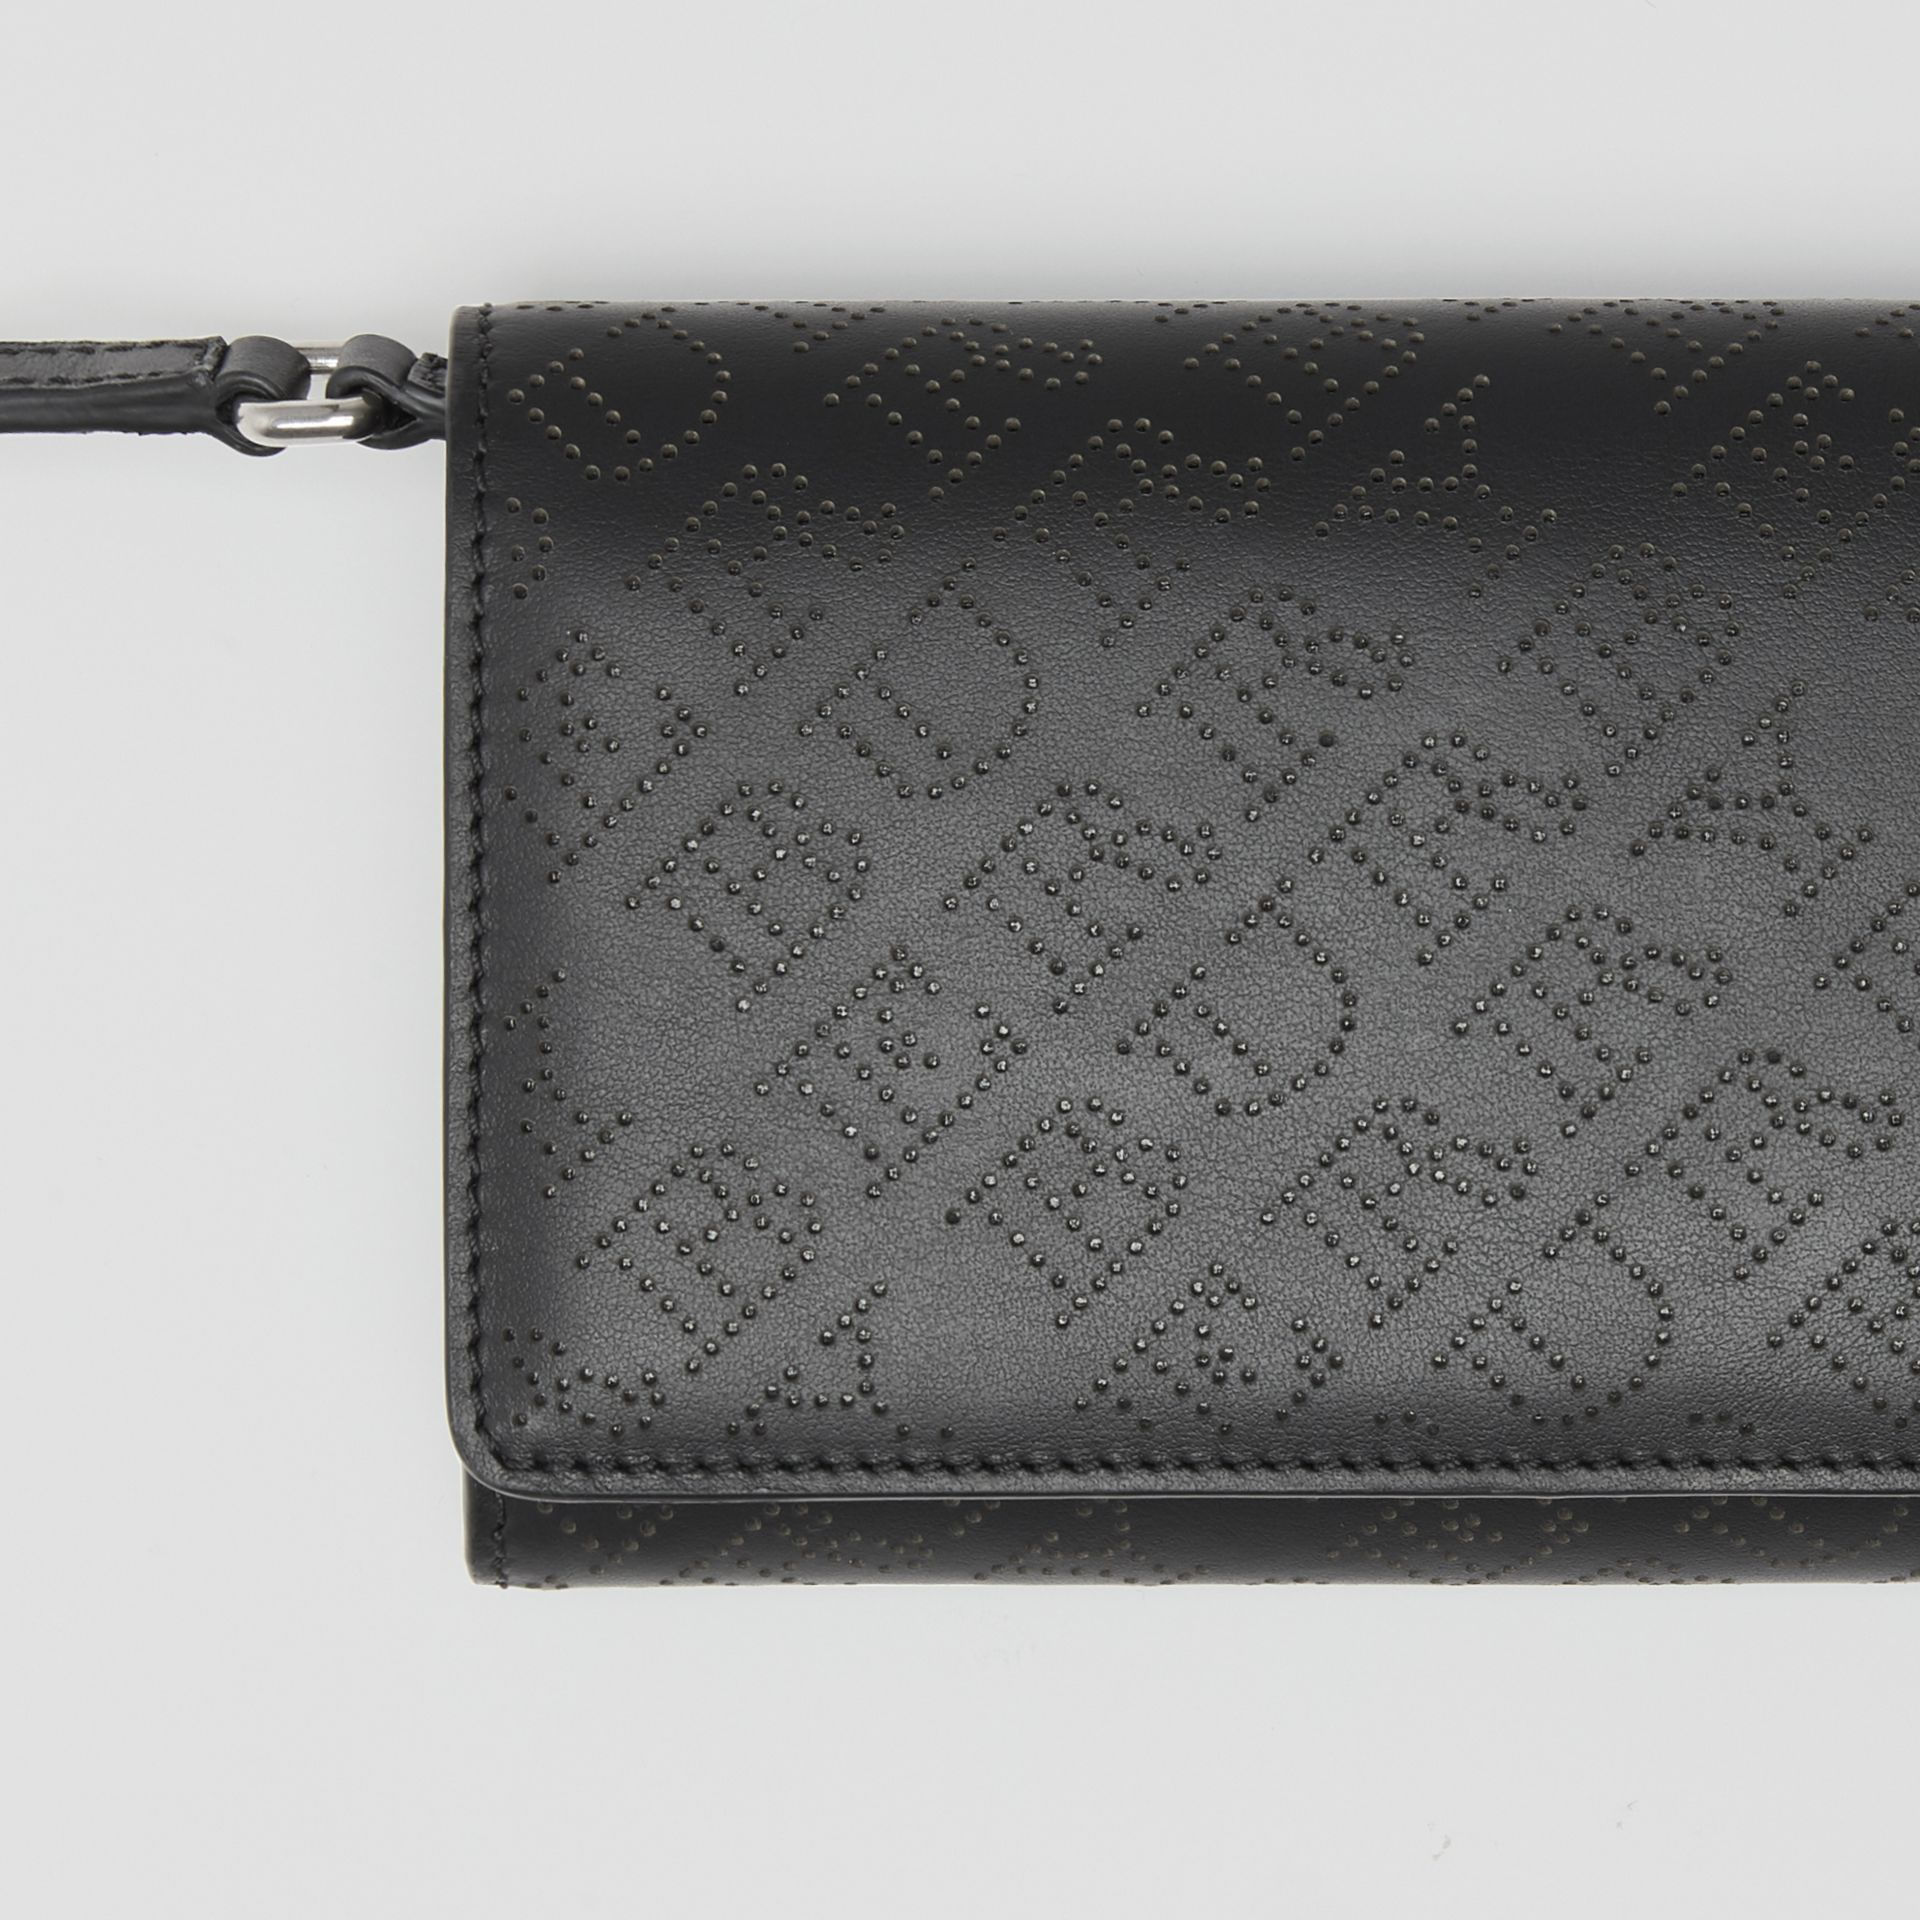 Perforated Logo Leather Wallet with Detachable Strap in Black - Women | Burberry - gallery image 1